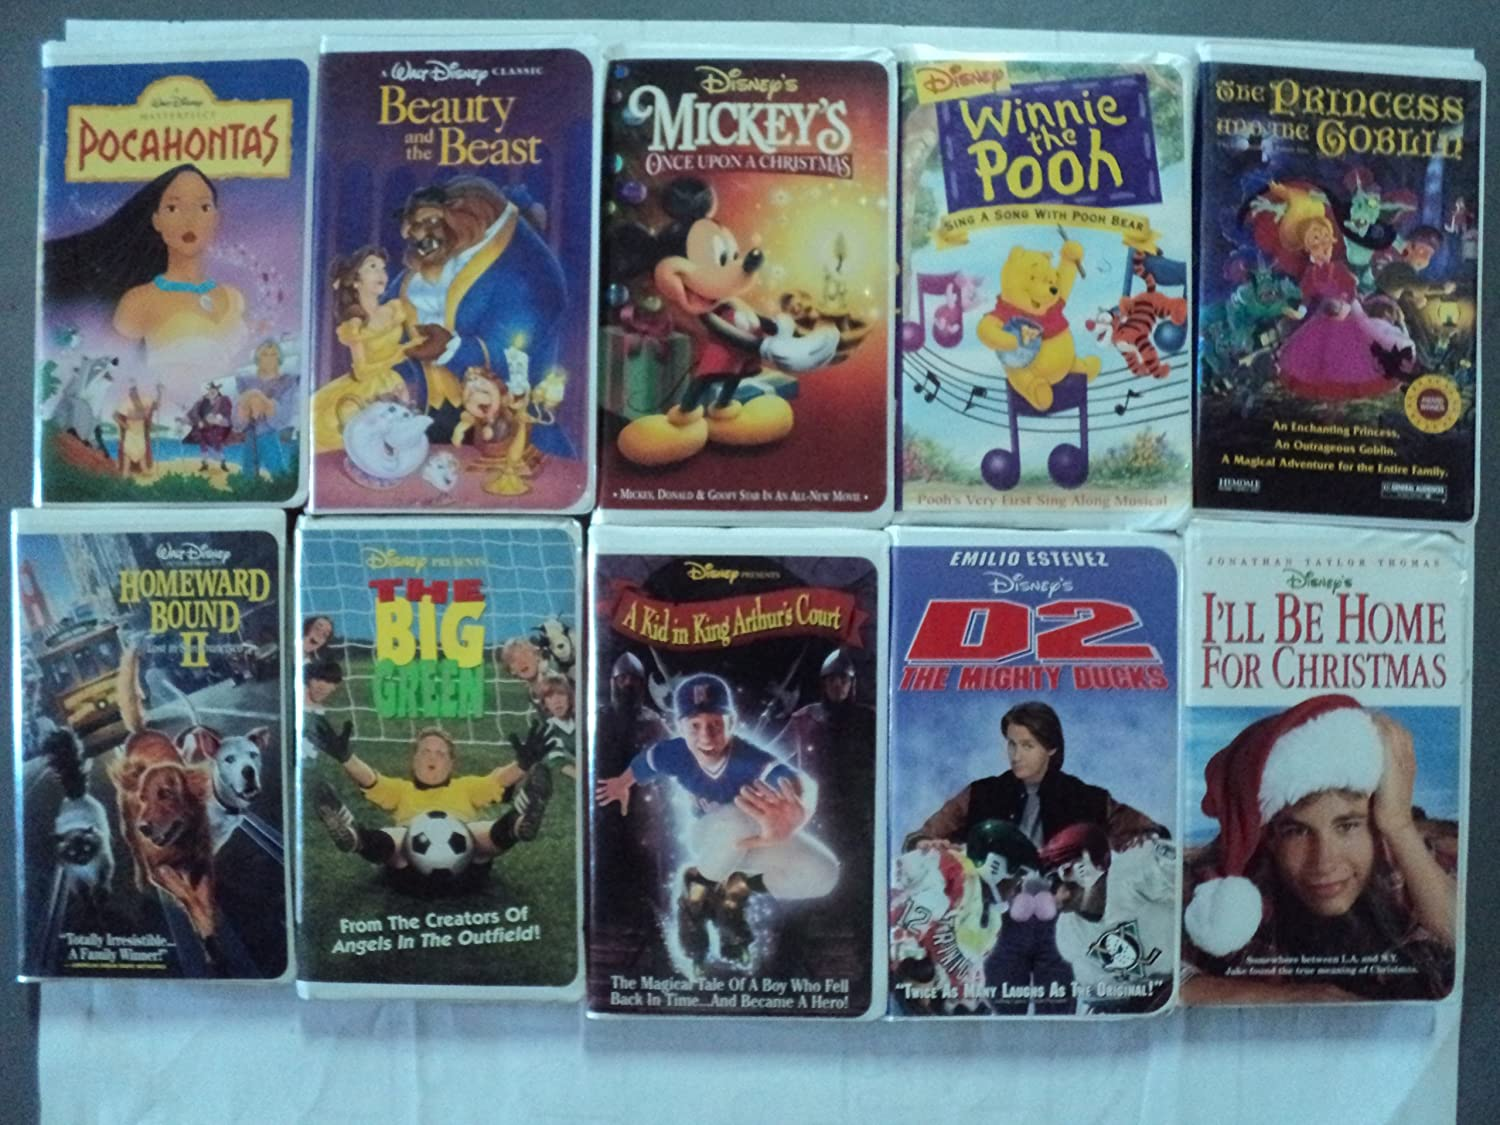 Ill Be Home For Christmas Vhs.Amazon Com Disney More 10 Pack Vhs Movies Walt Disney